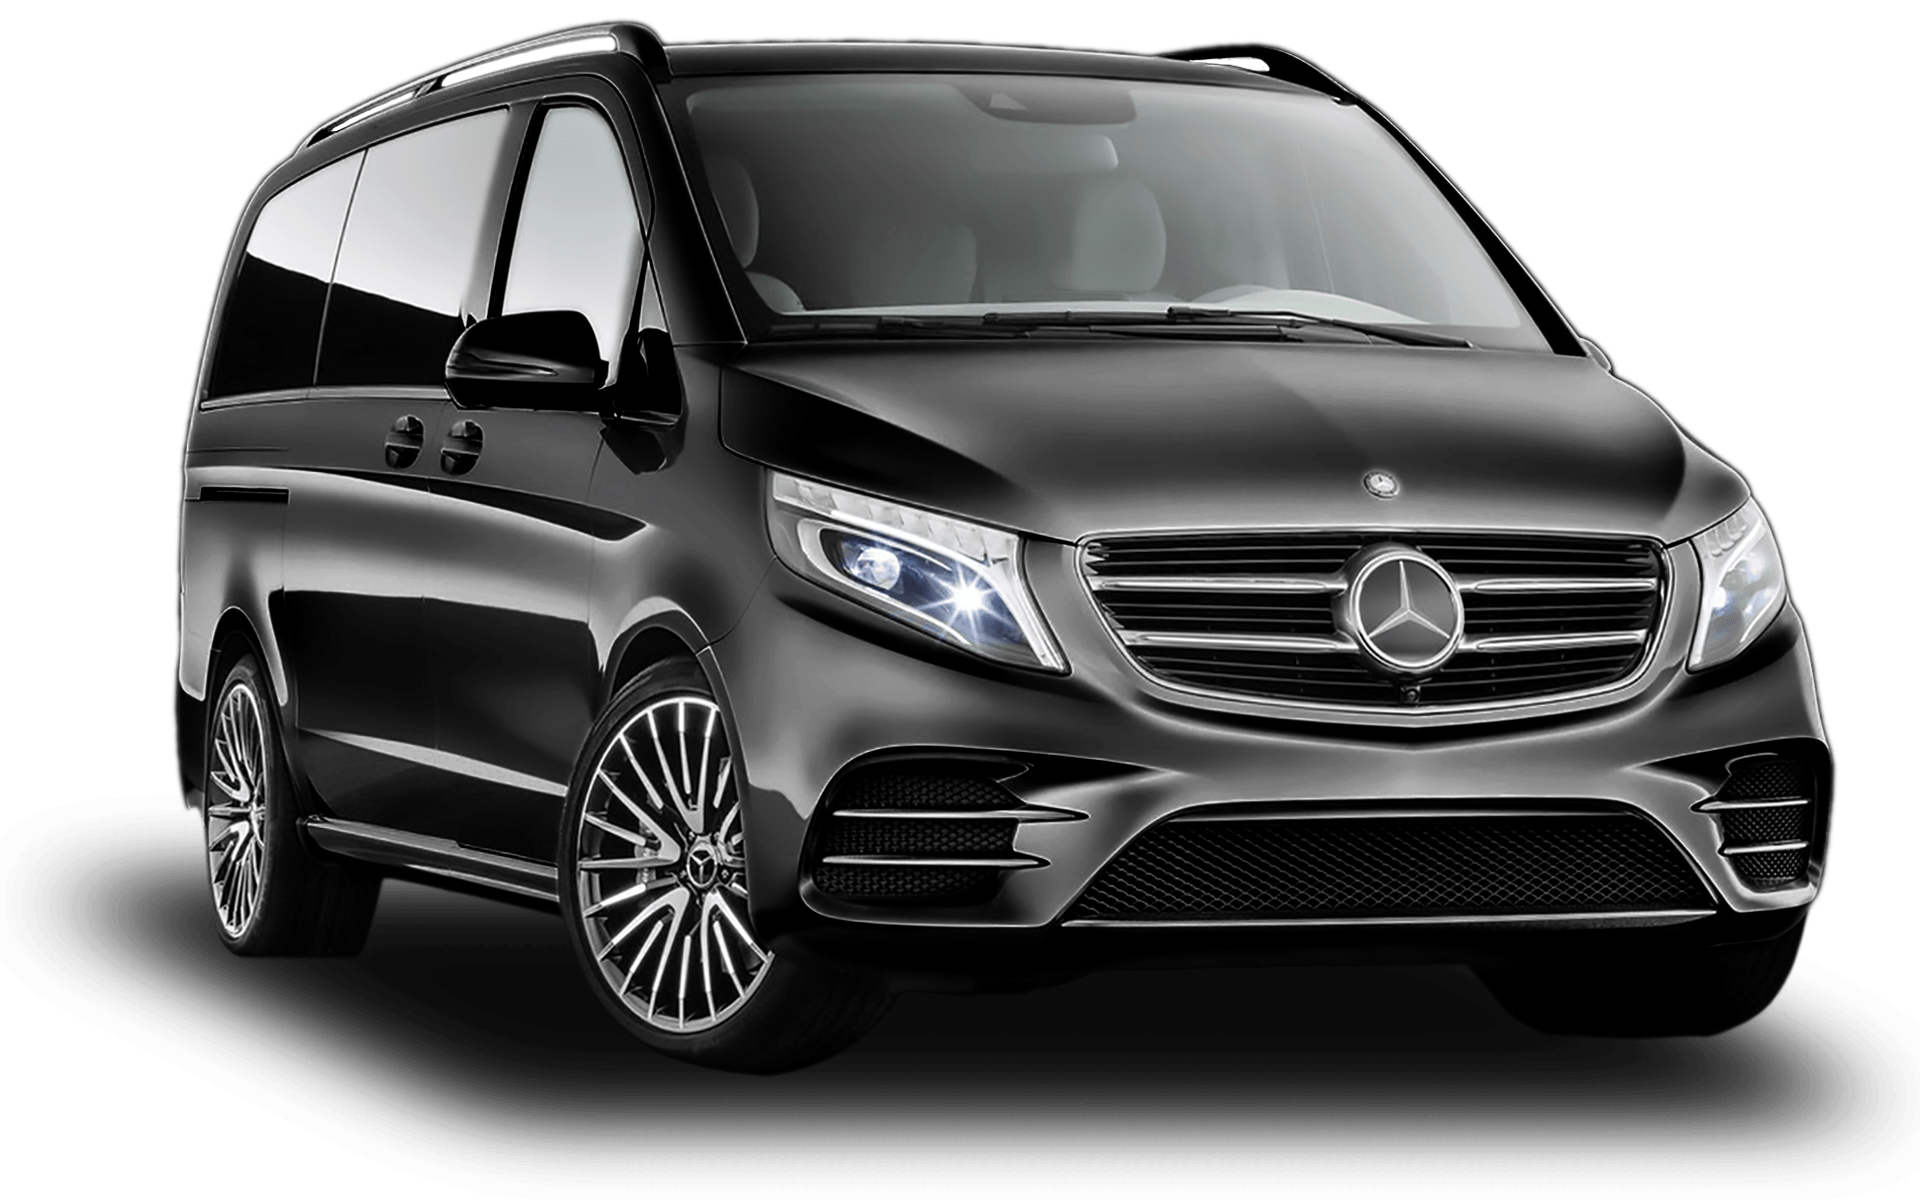 Prague chauffeur services